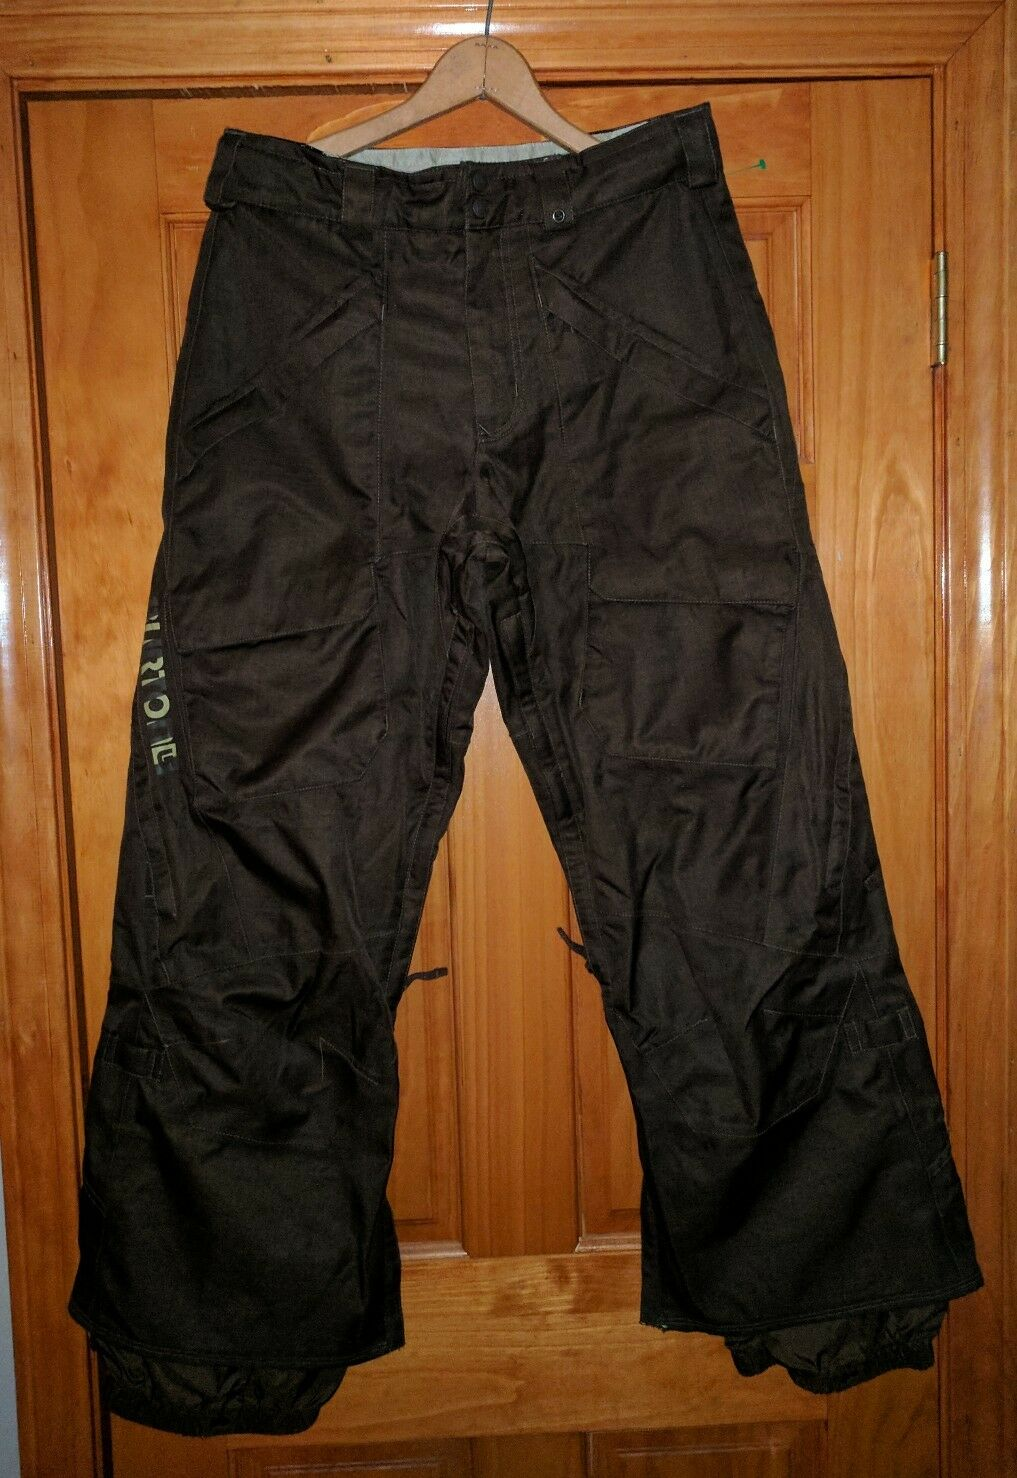 BURTON DRY RIDE BROWN MENS SKI SNOW SNOWBOARDING PANTS S SM  CARGO 34 WAIST